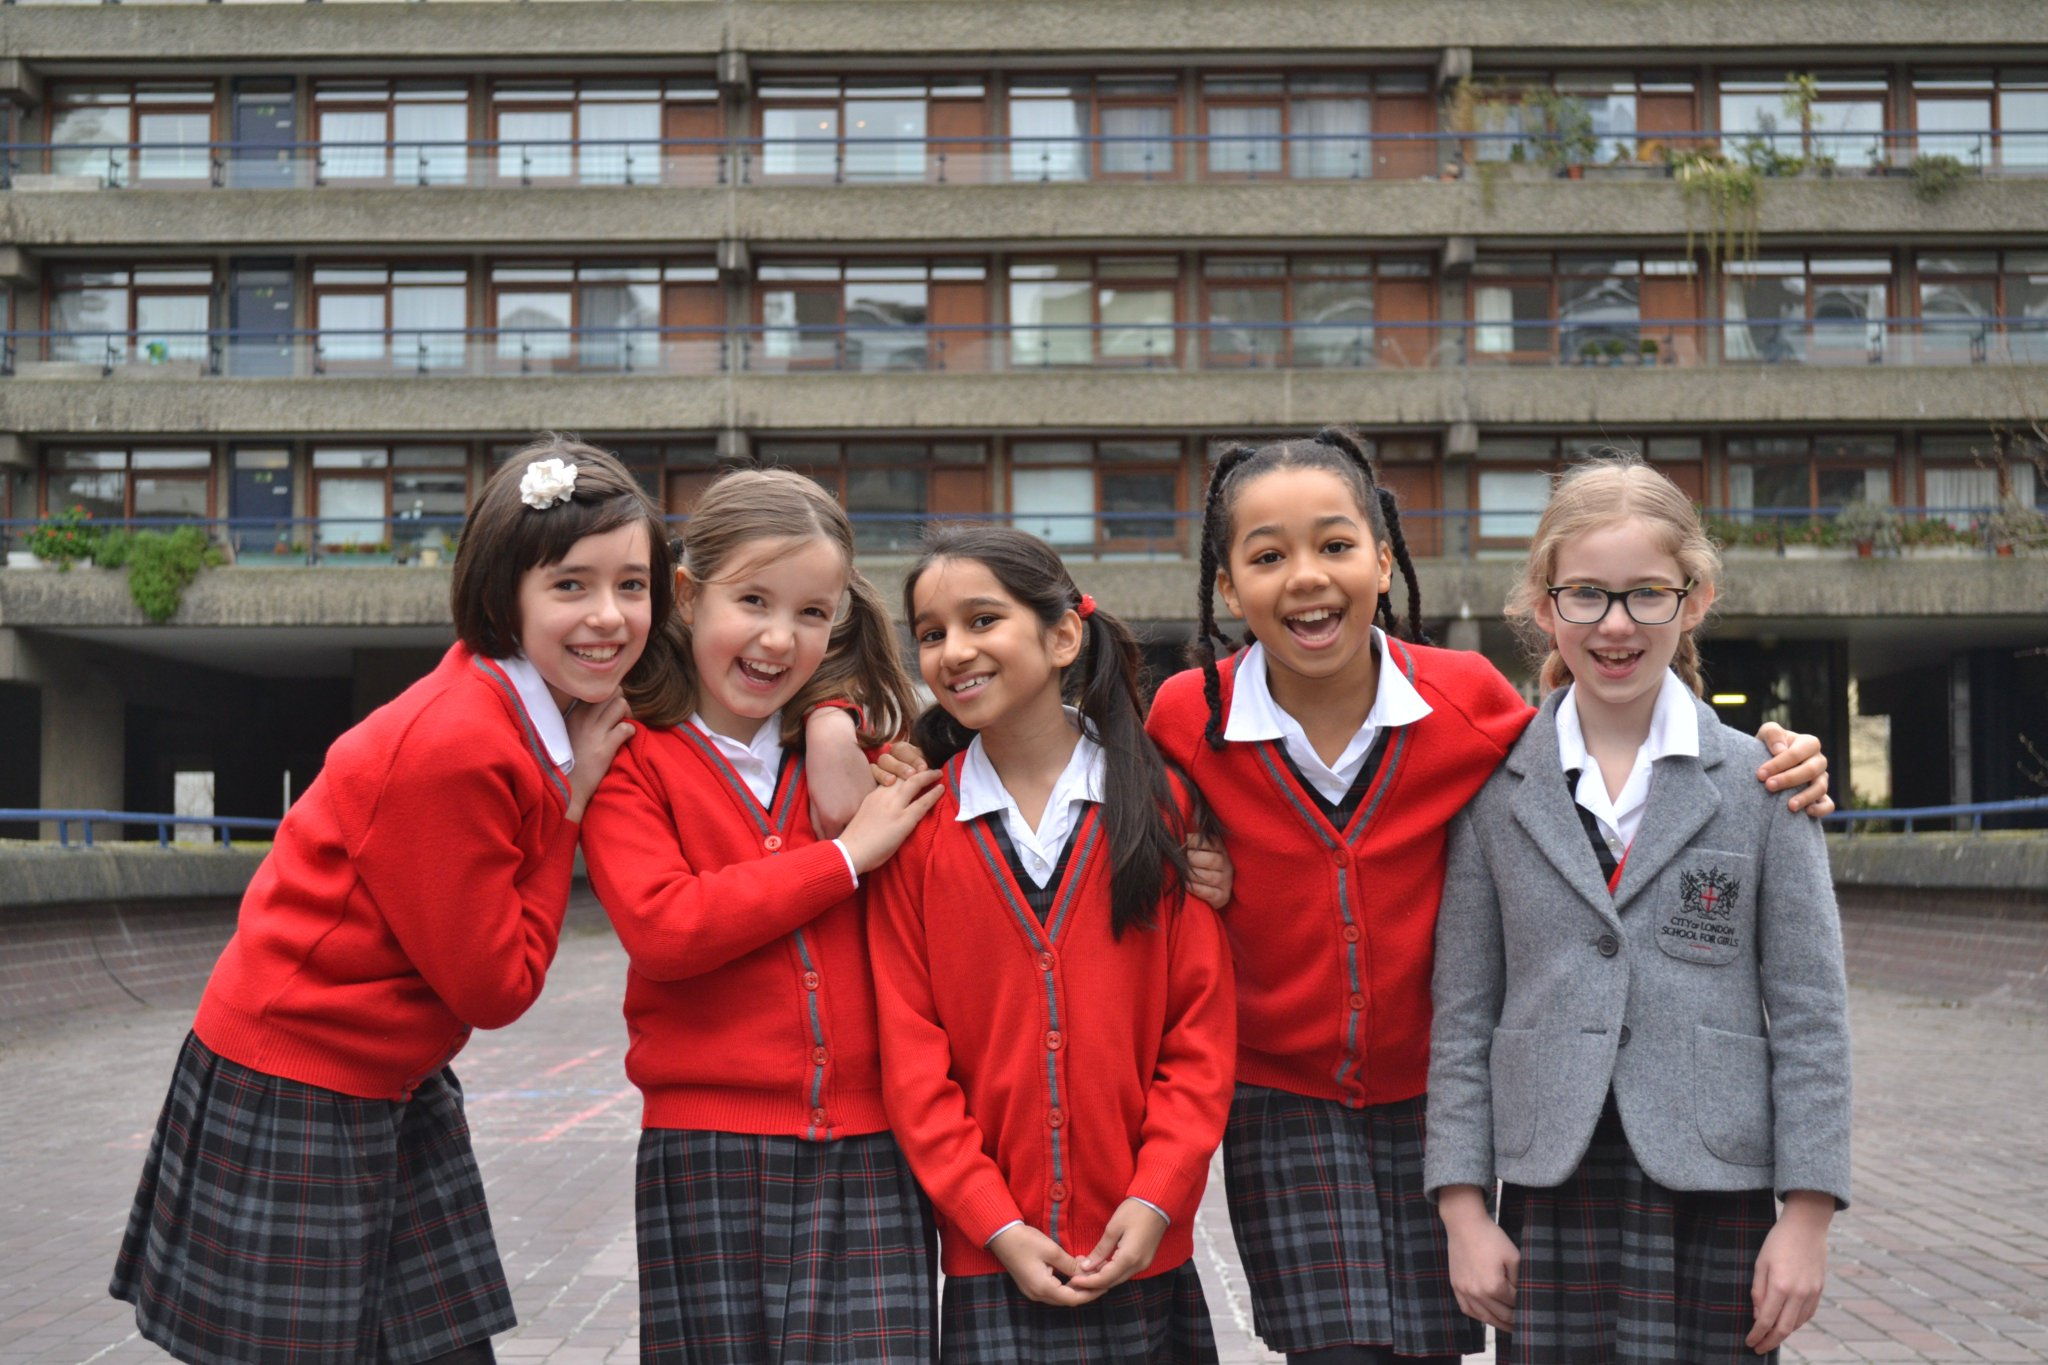 City Of London School For Girls On Twitter Join Us For Our Year 3 Age 7 Open Evening From 4pm To 6pm Today 16 00 16 55 Tours Of The School 17 00 17 30 Head